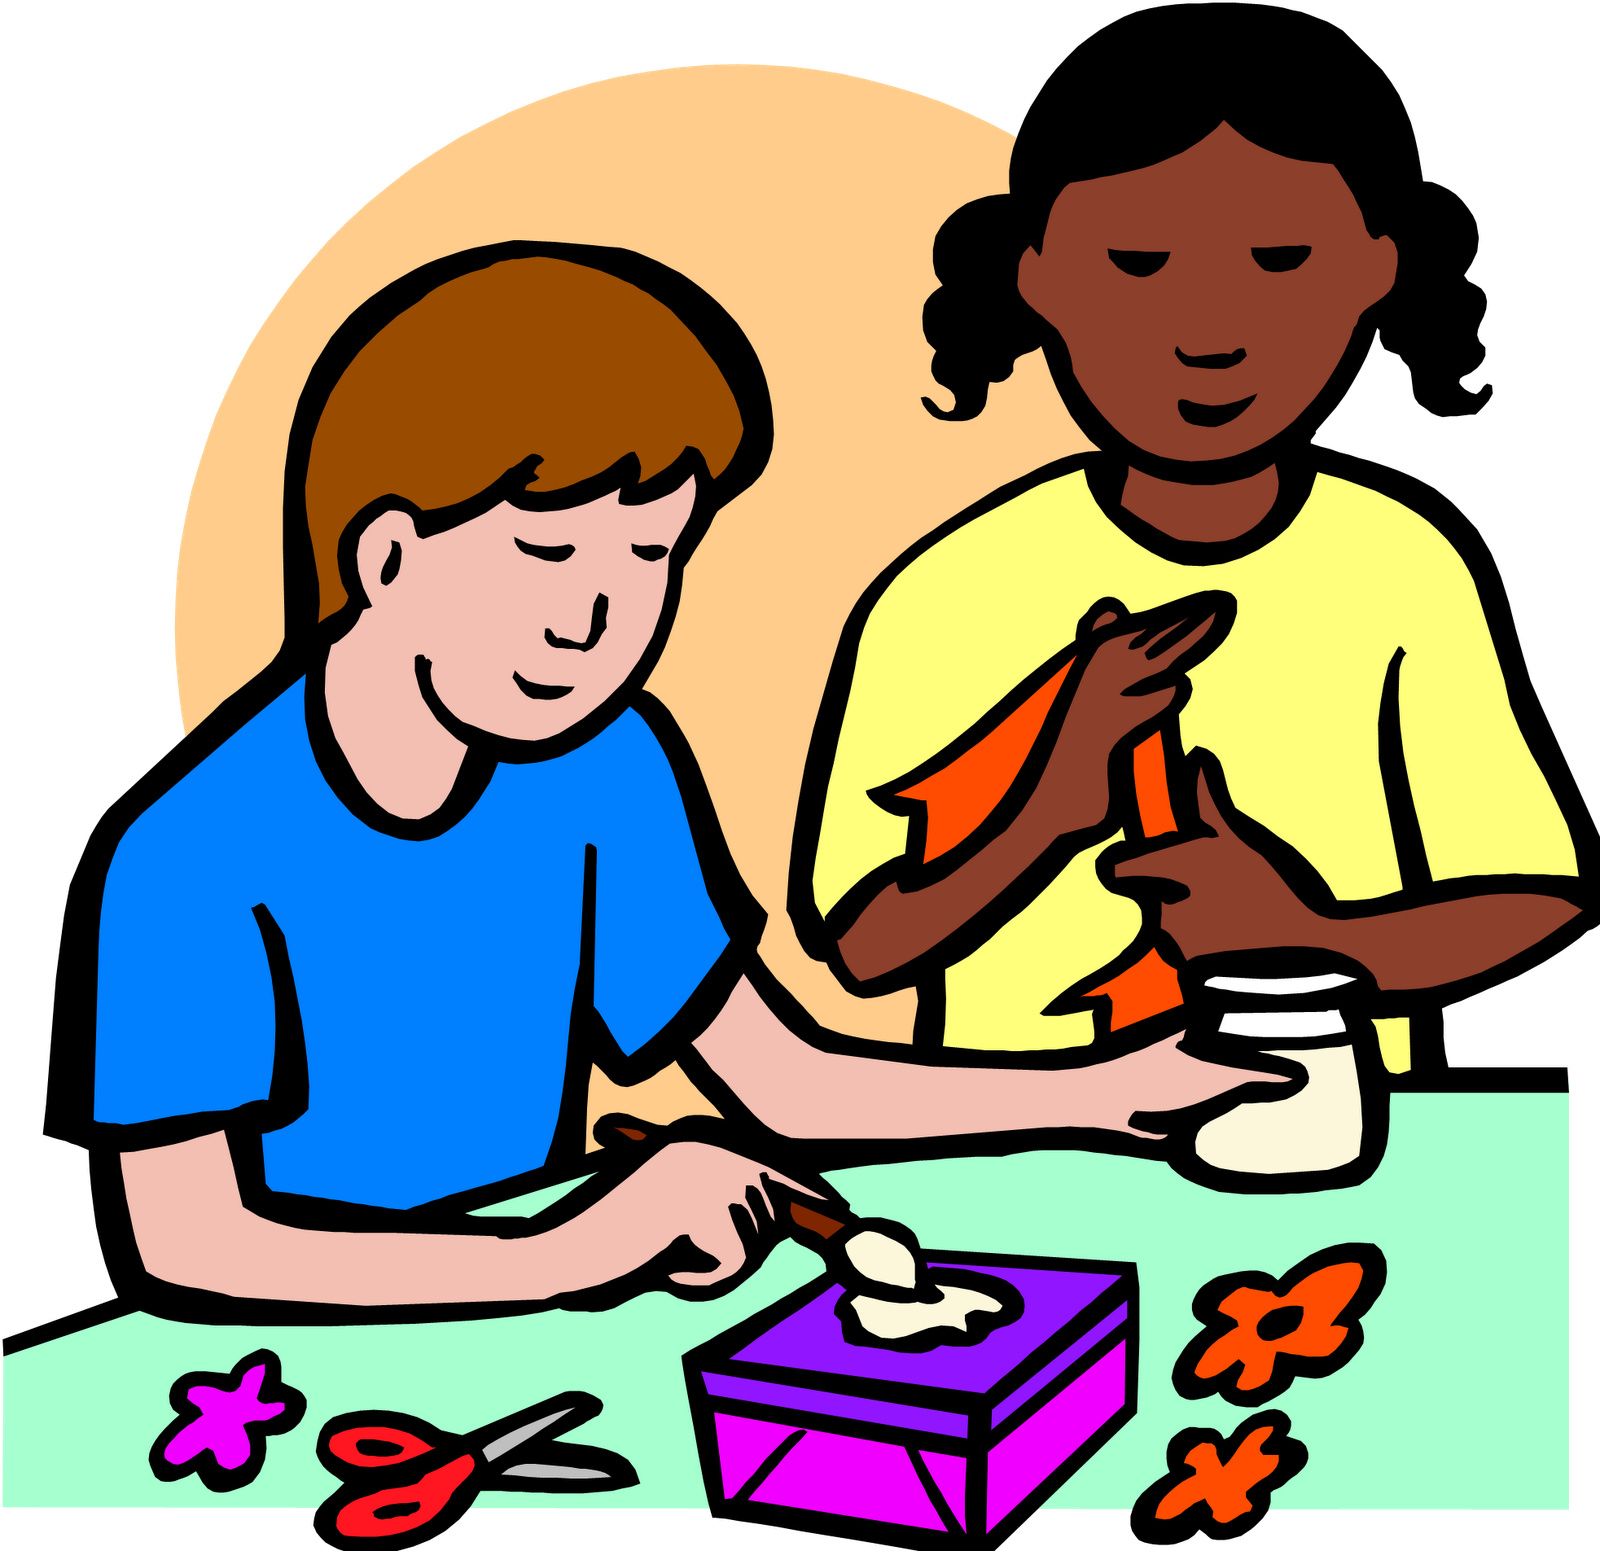 Arts and crafts clipart 3